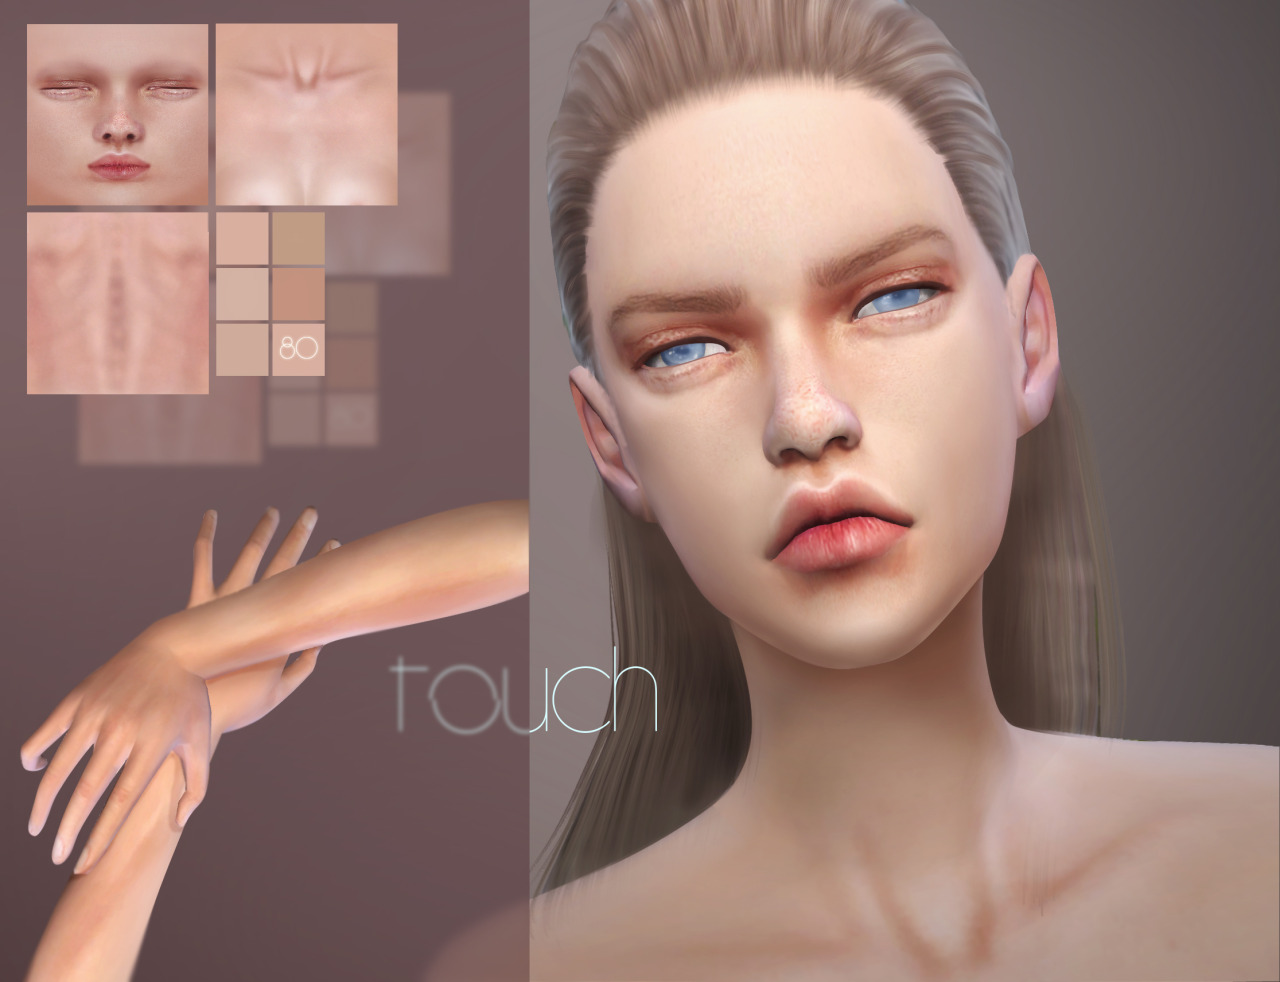 Touch Skin for Males and Females by 1000FormsOfFear